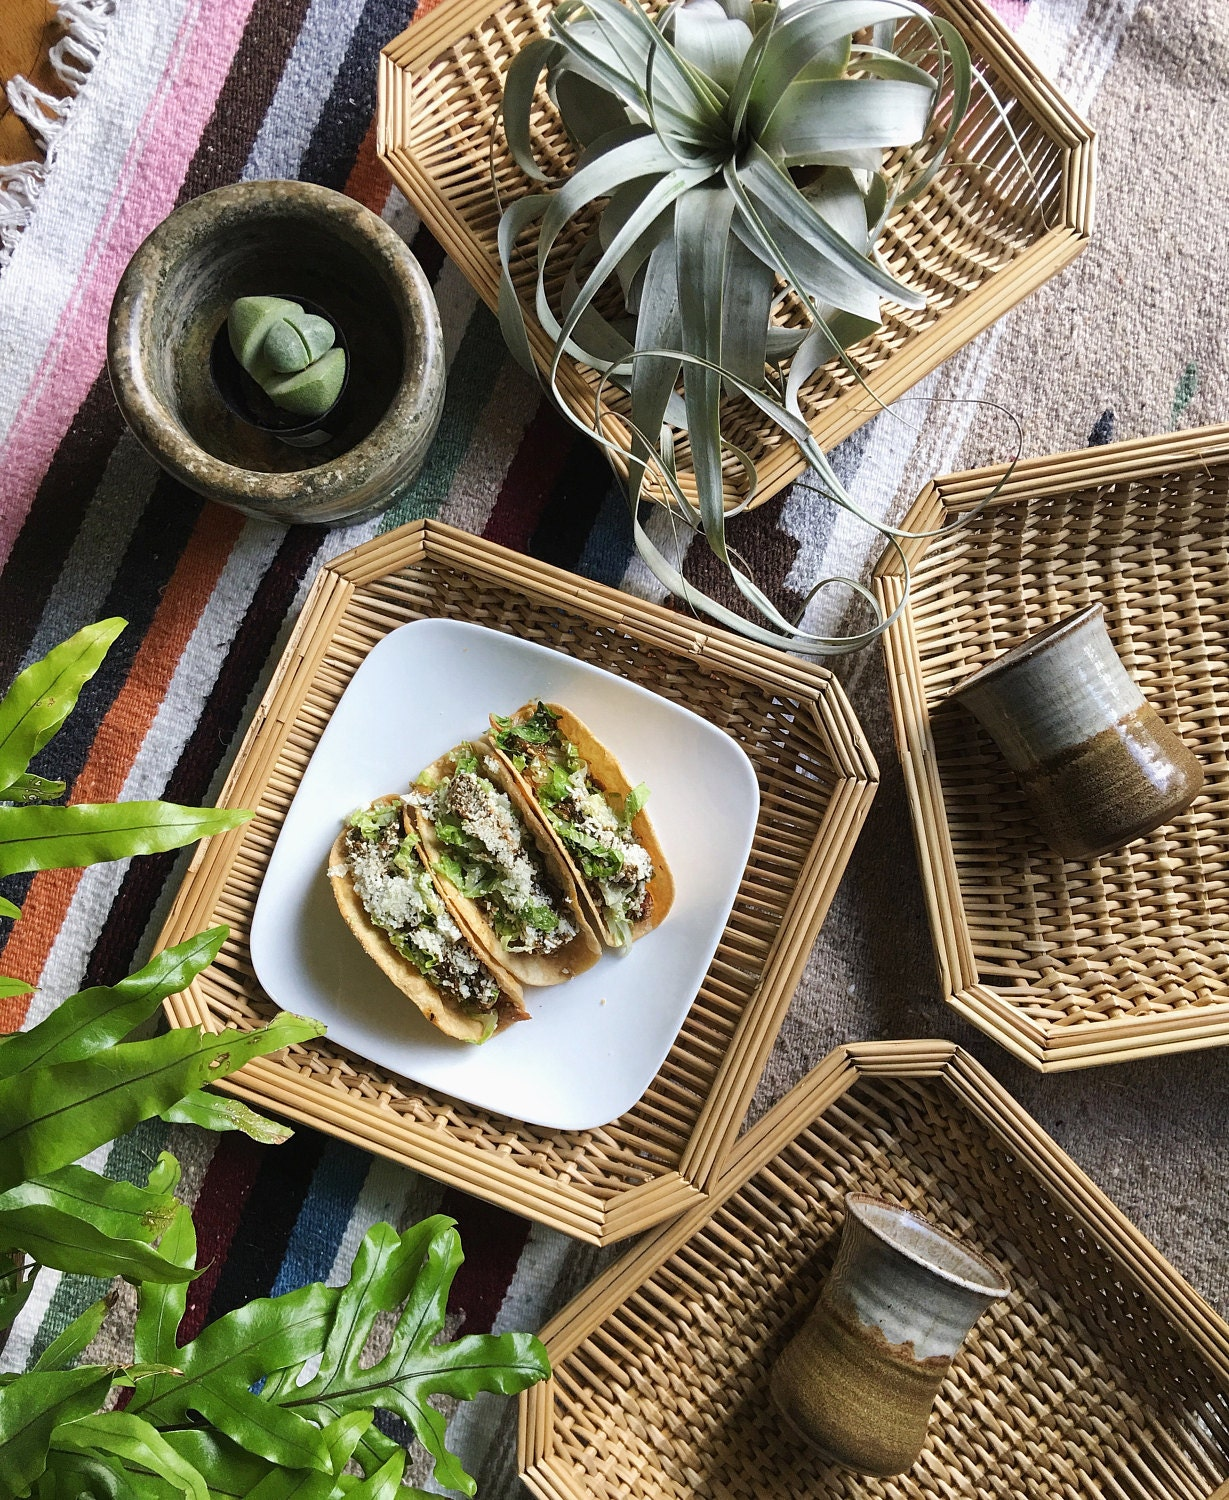 Square wicker place mats